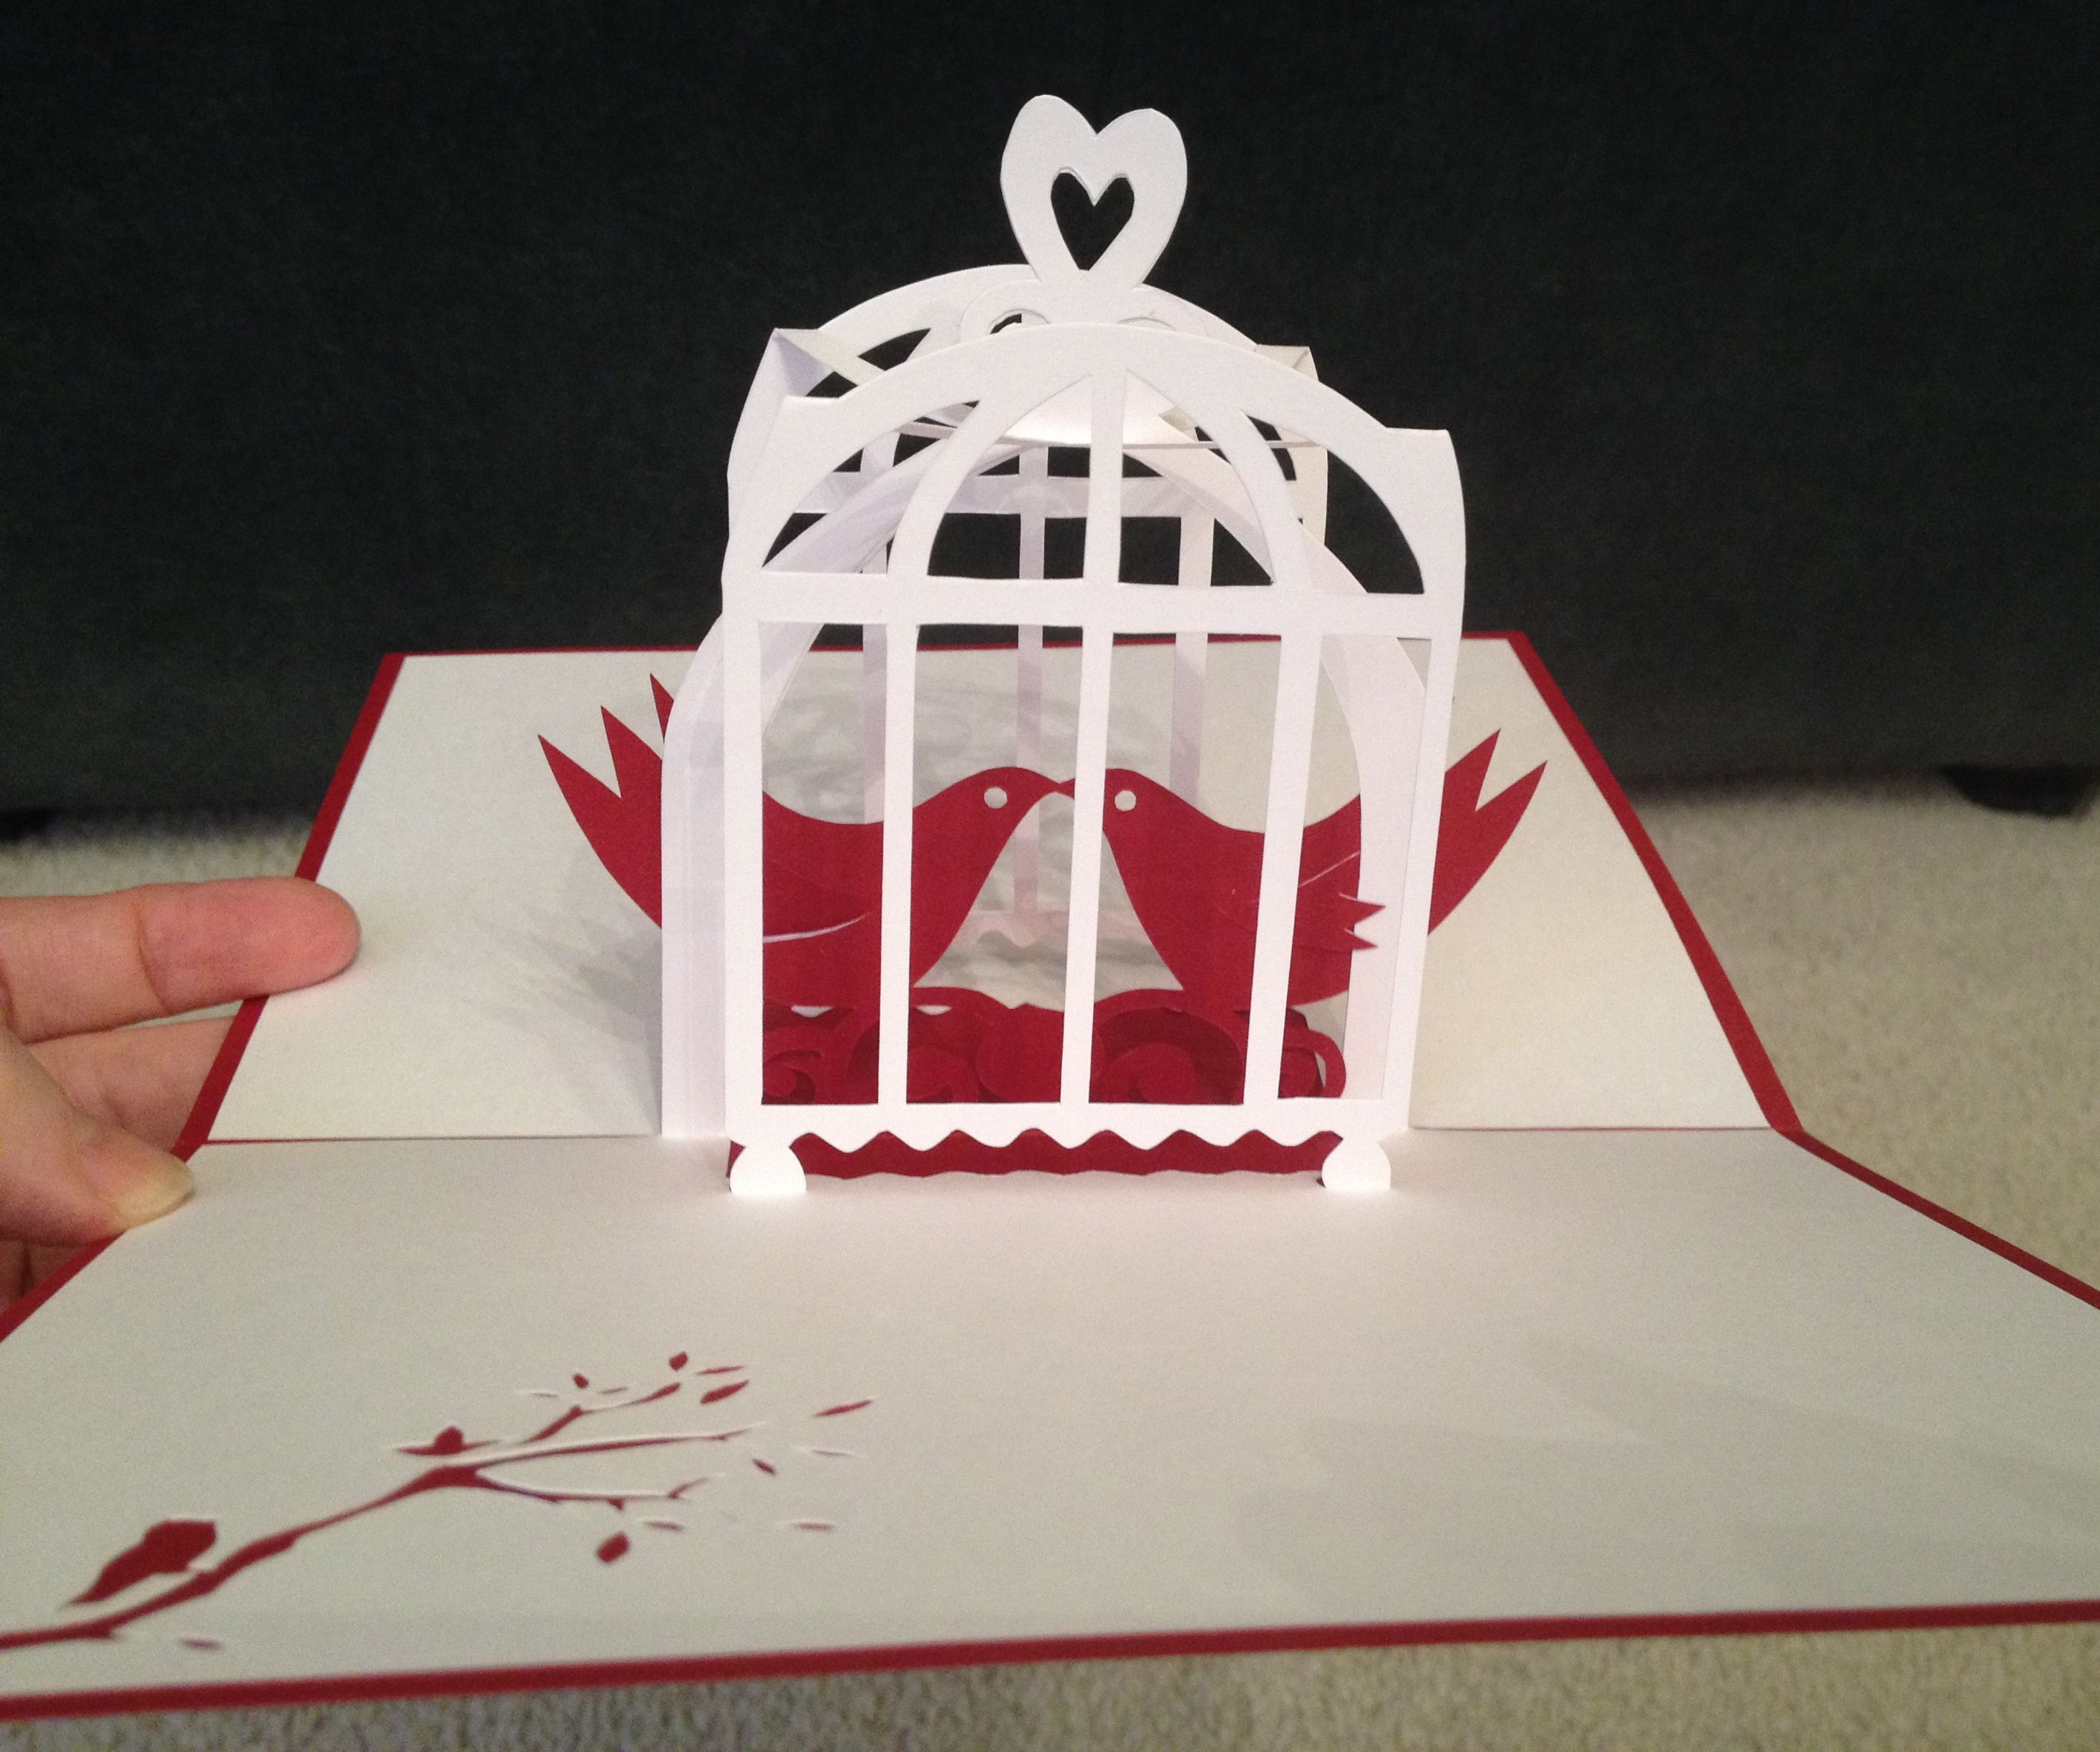 Bird Cage Pop Up Card Template From Cahier De Kirigami No 16 Pop Up Cards Pop Up Card Templates Kirigami Patterns